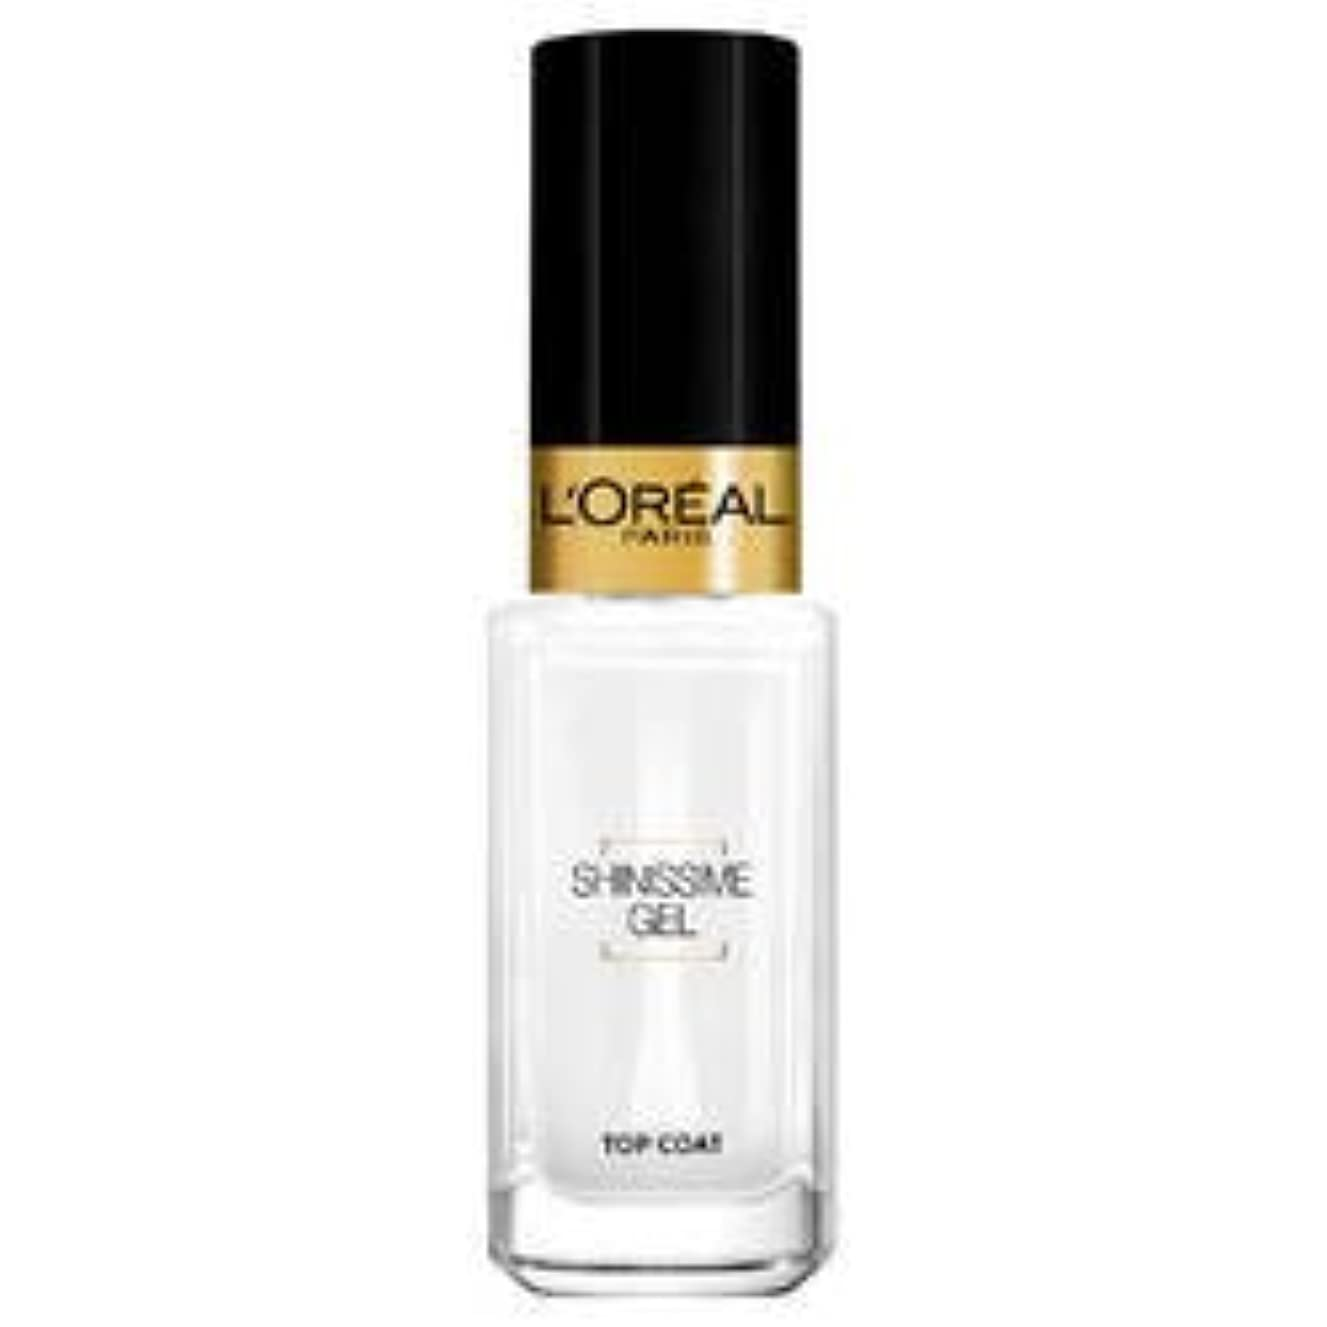 武器額振り子L'Oréal Paris La Manucure - Le Top Coat - Shinissime Gel- (for multi-item order extra postage cost will be reimbursed)